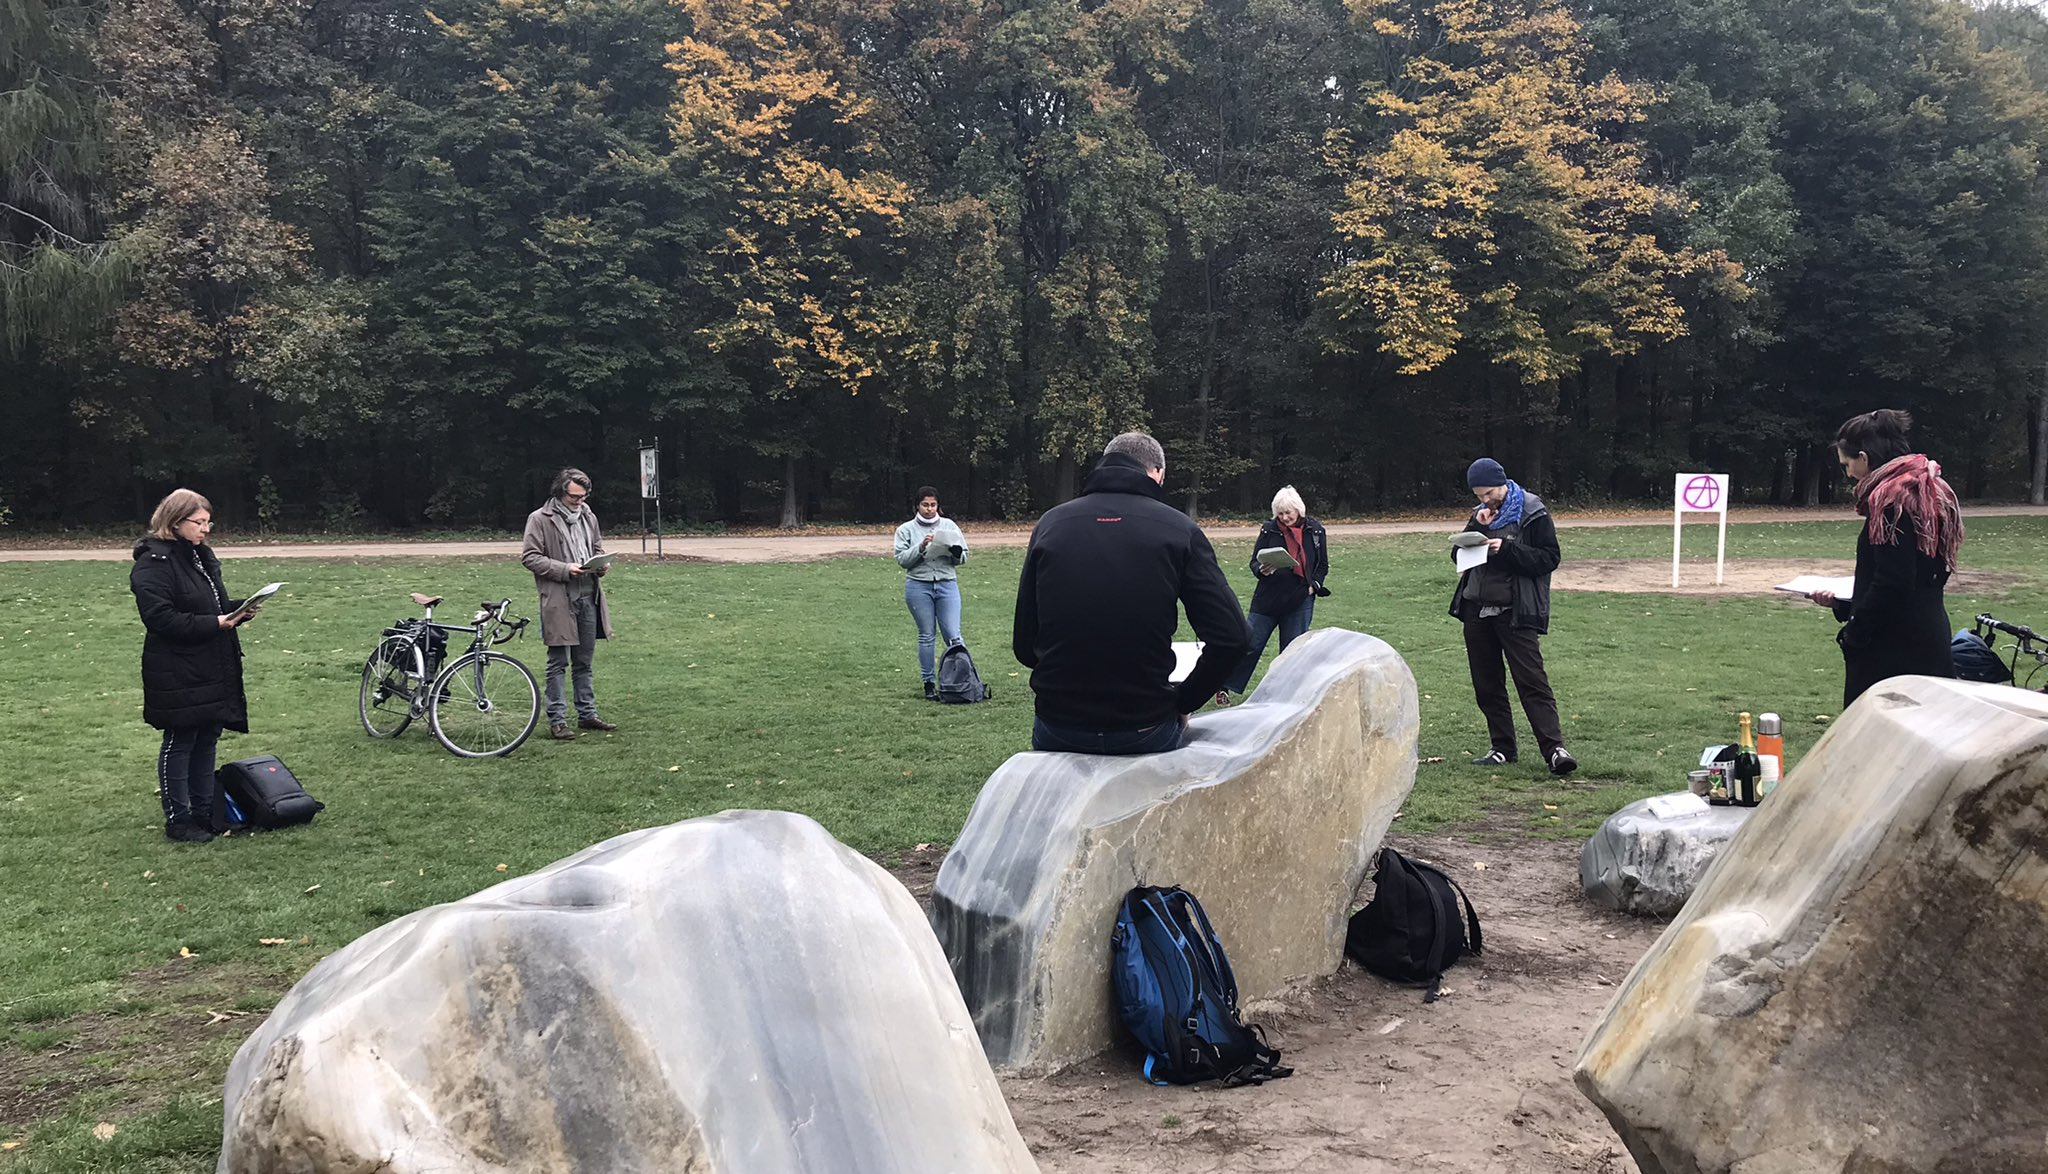 Global Stone Project in Tiergarten